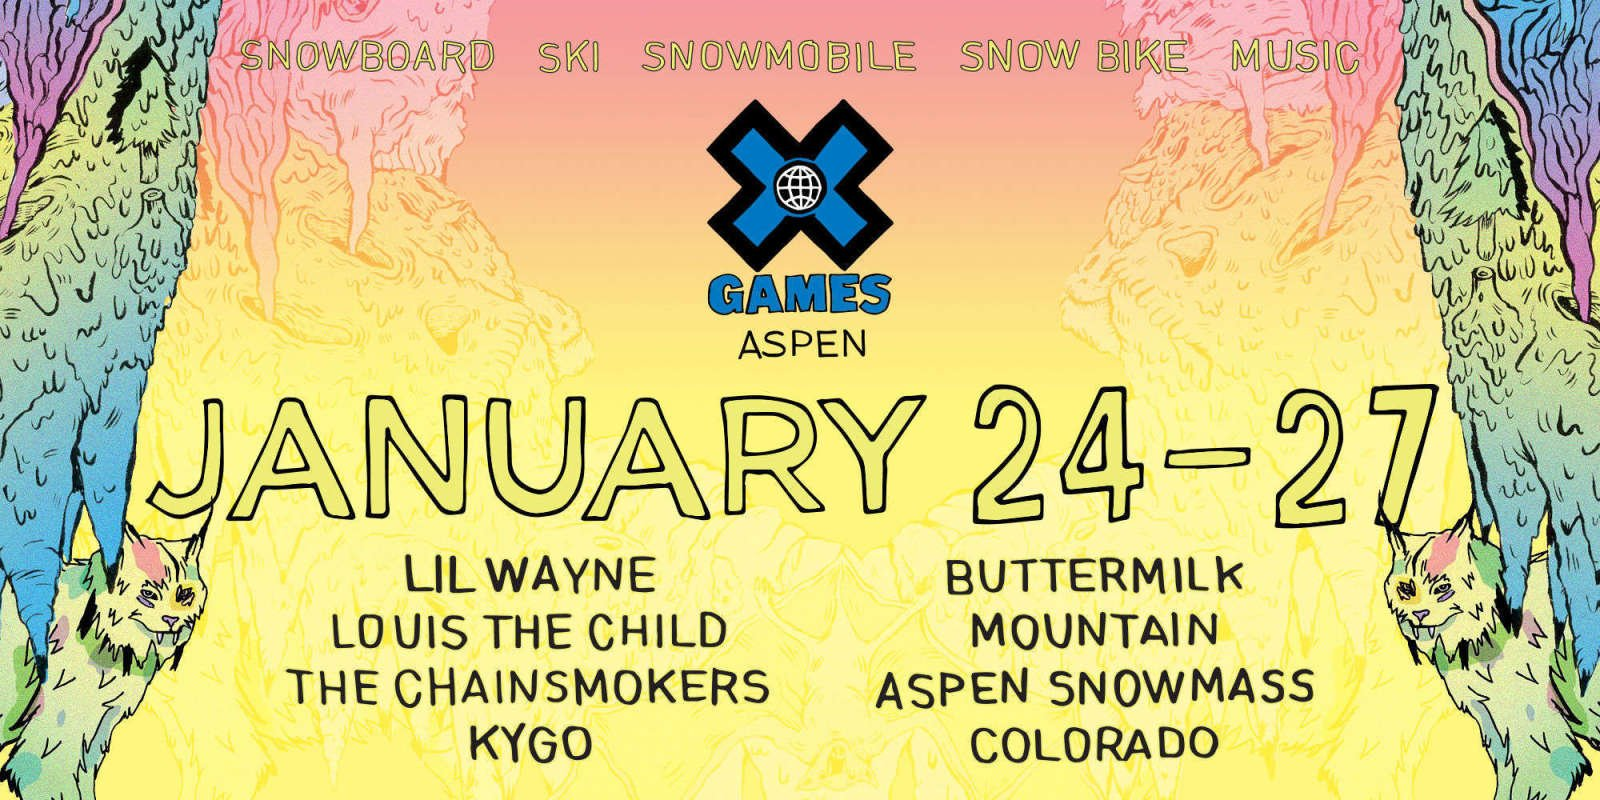 Returning for the 18th year, X Games will take over Buttermilk Mountain in Aspen Snowmass, Colorado, from January 24 -27, 2018.